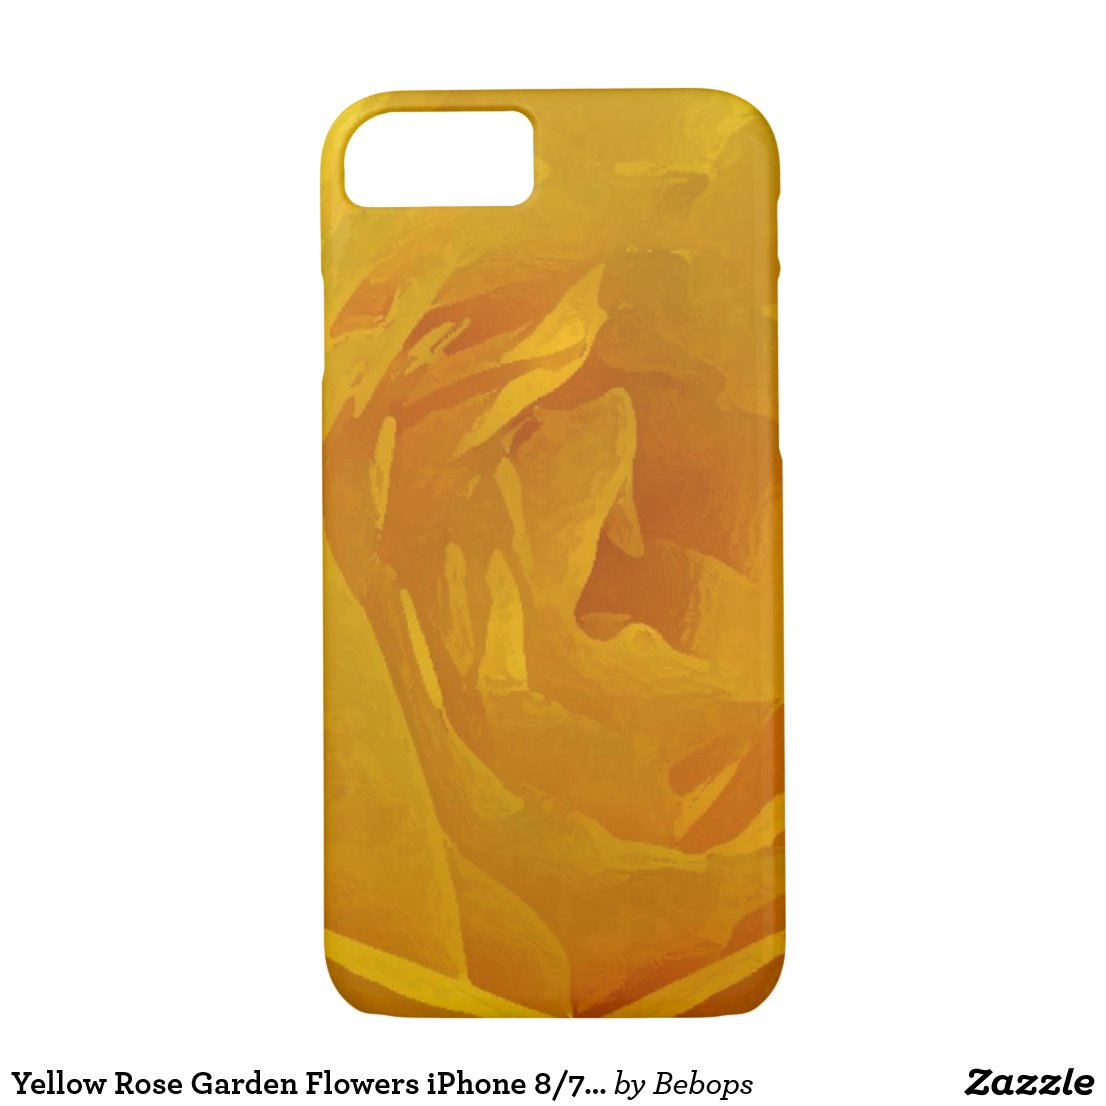 Yellow Rose Garden Flowers iPhone 8/7 Case